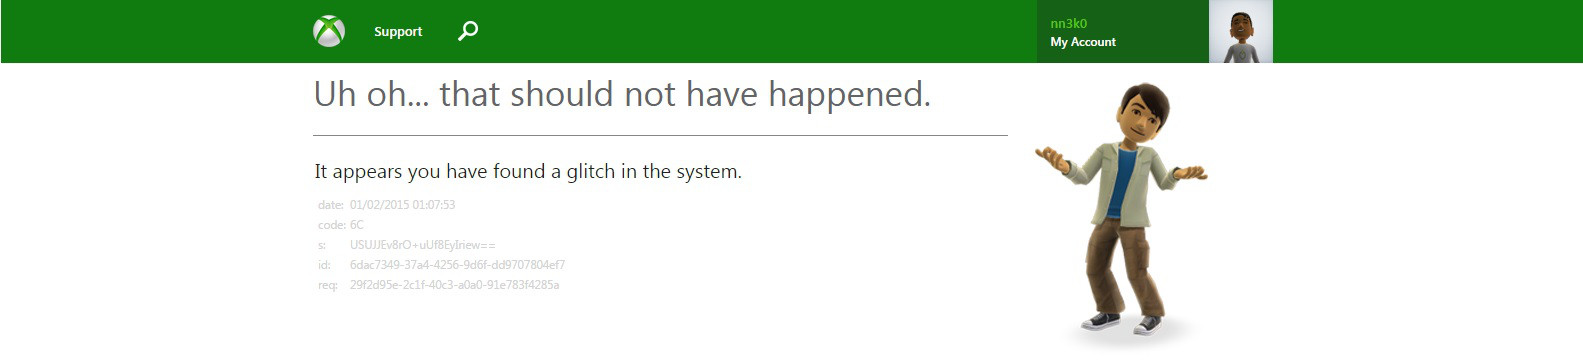 XBox Live Support is Uh Oh